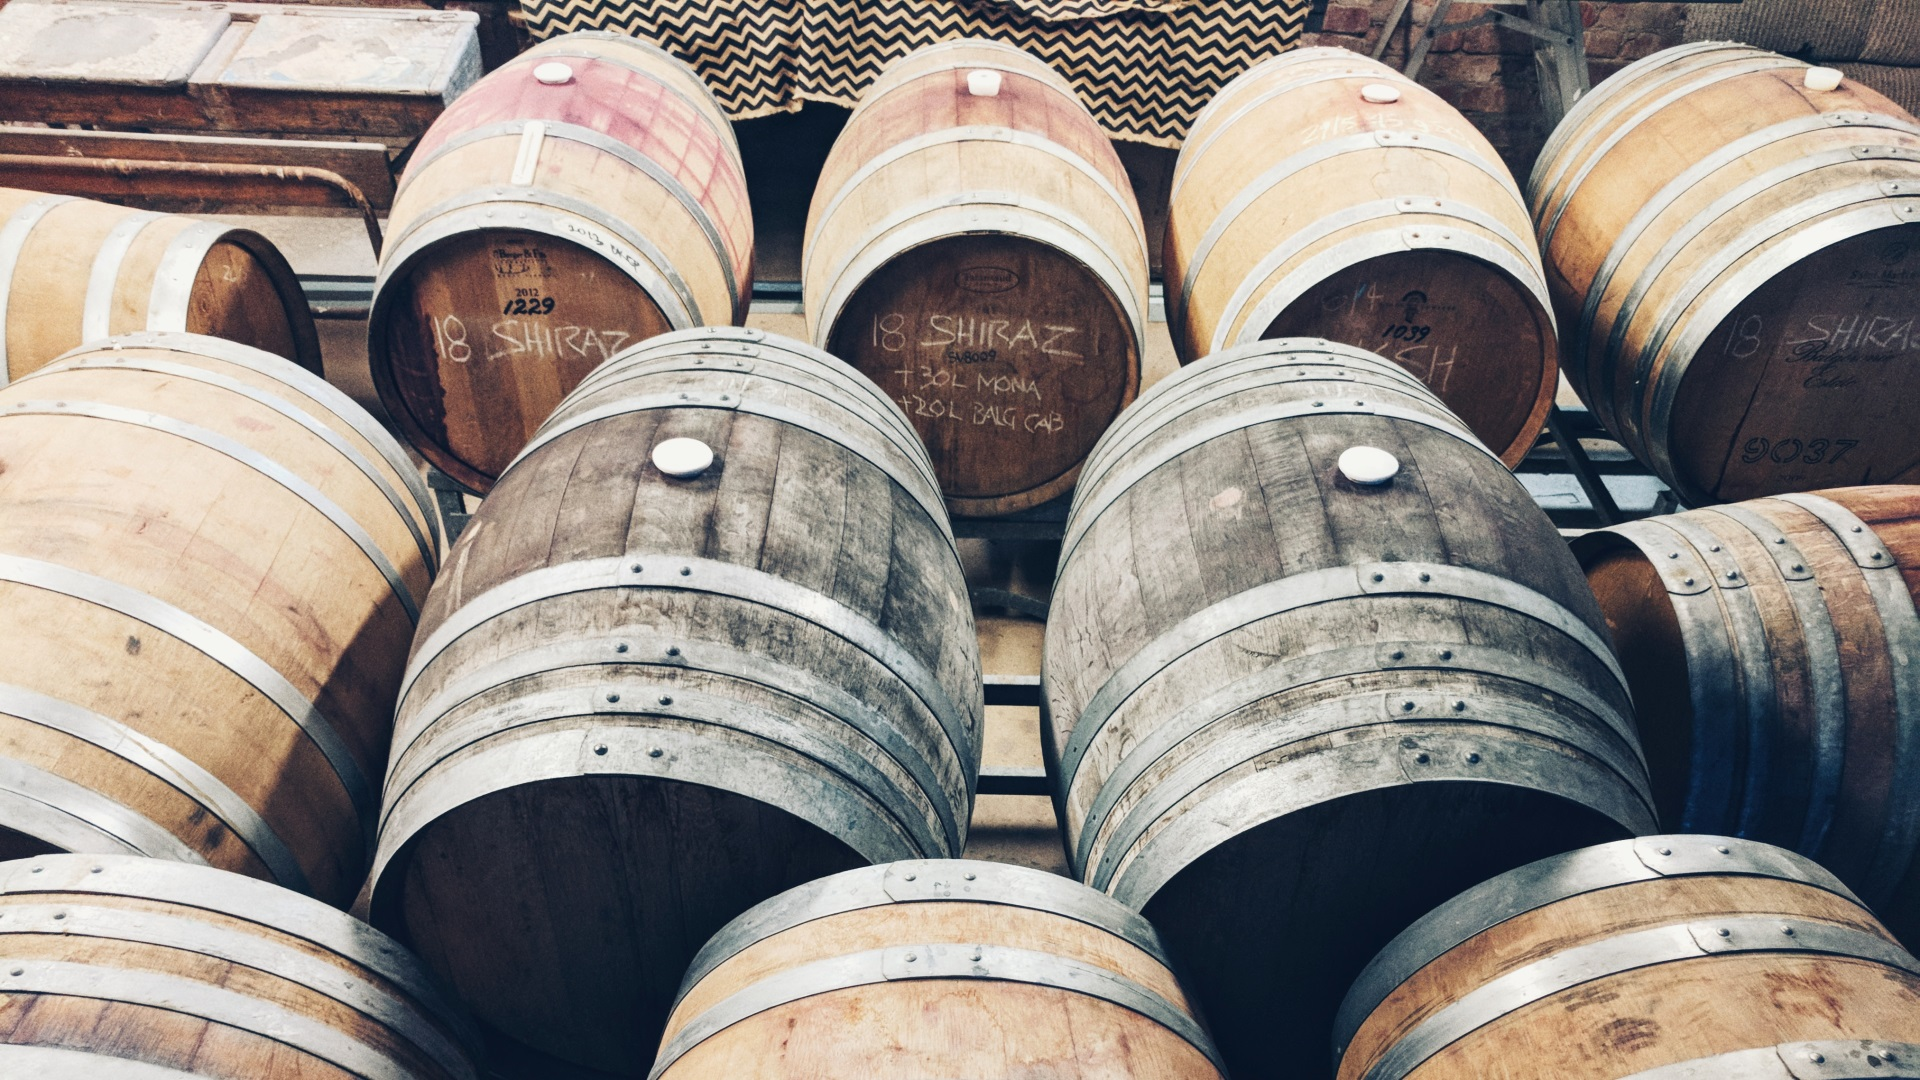 Taste straight from the Wine Barrels